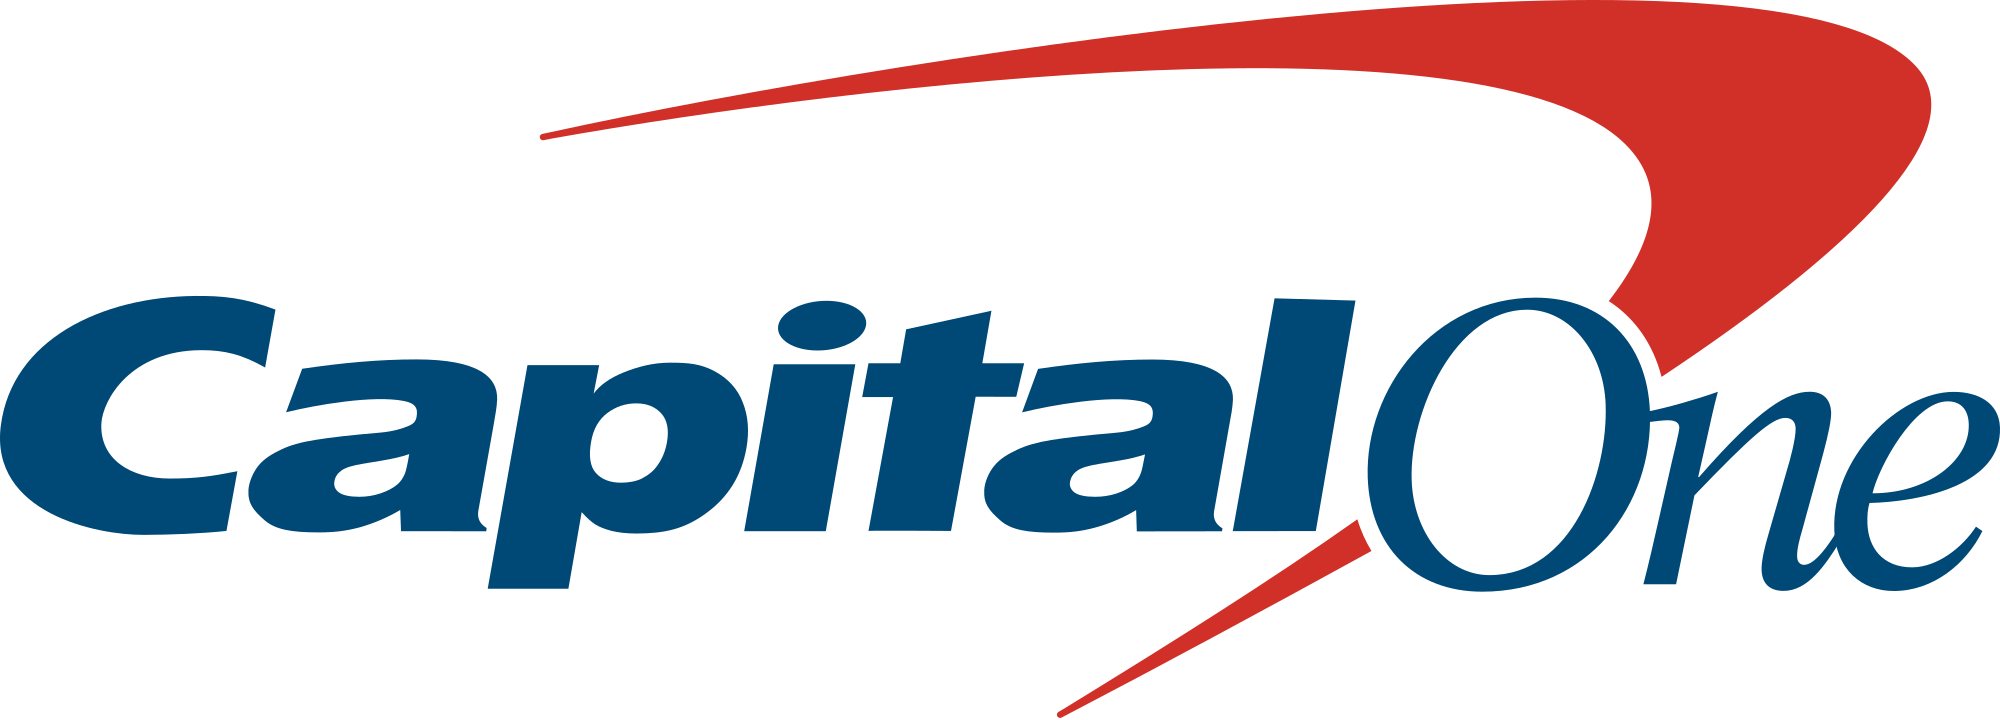 Data Engineer - Senior Manager (Hadoop, Kafka, Cassandra, Spark, H2O, AWS) role from Capital One in Richmond, VA